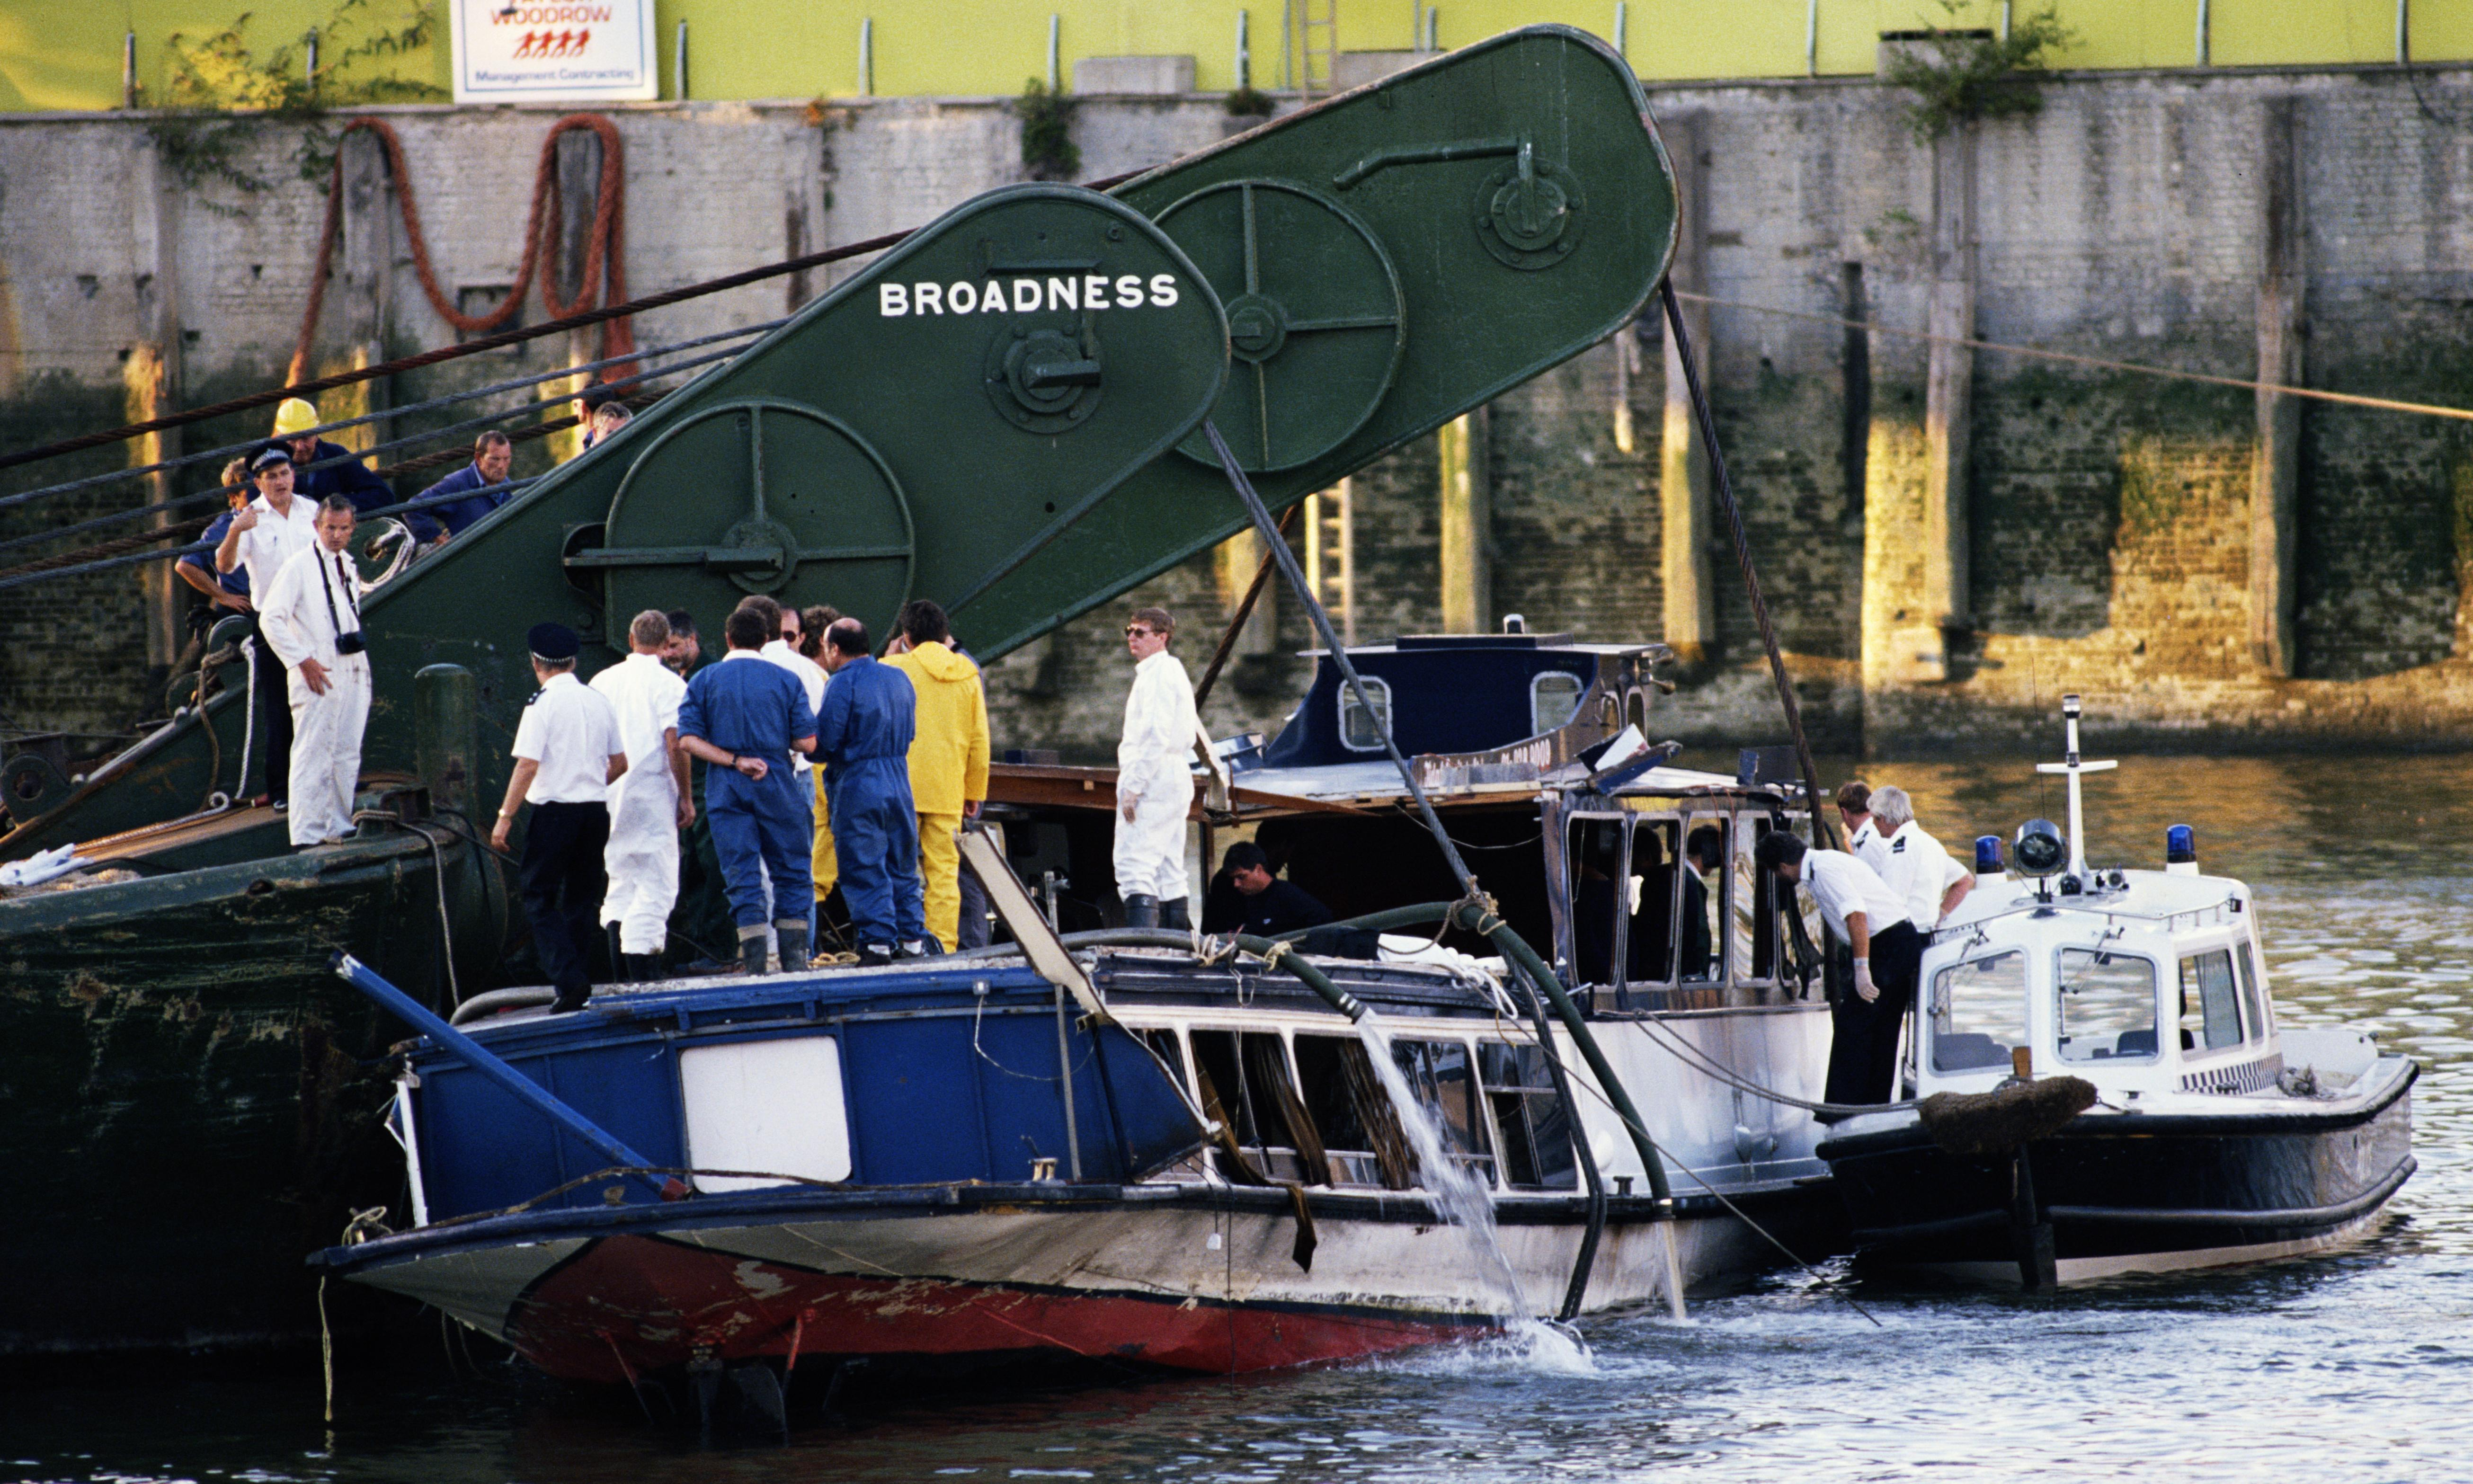 Thames vigil to be held on 30th anniversary of Marchioness disaster